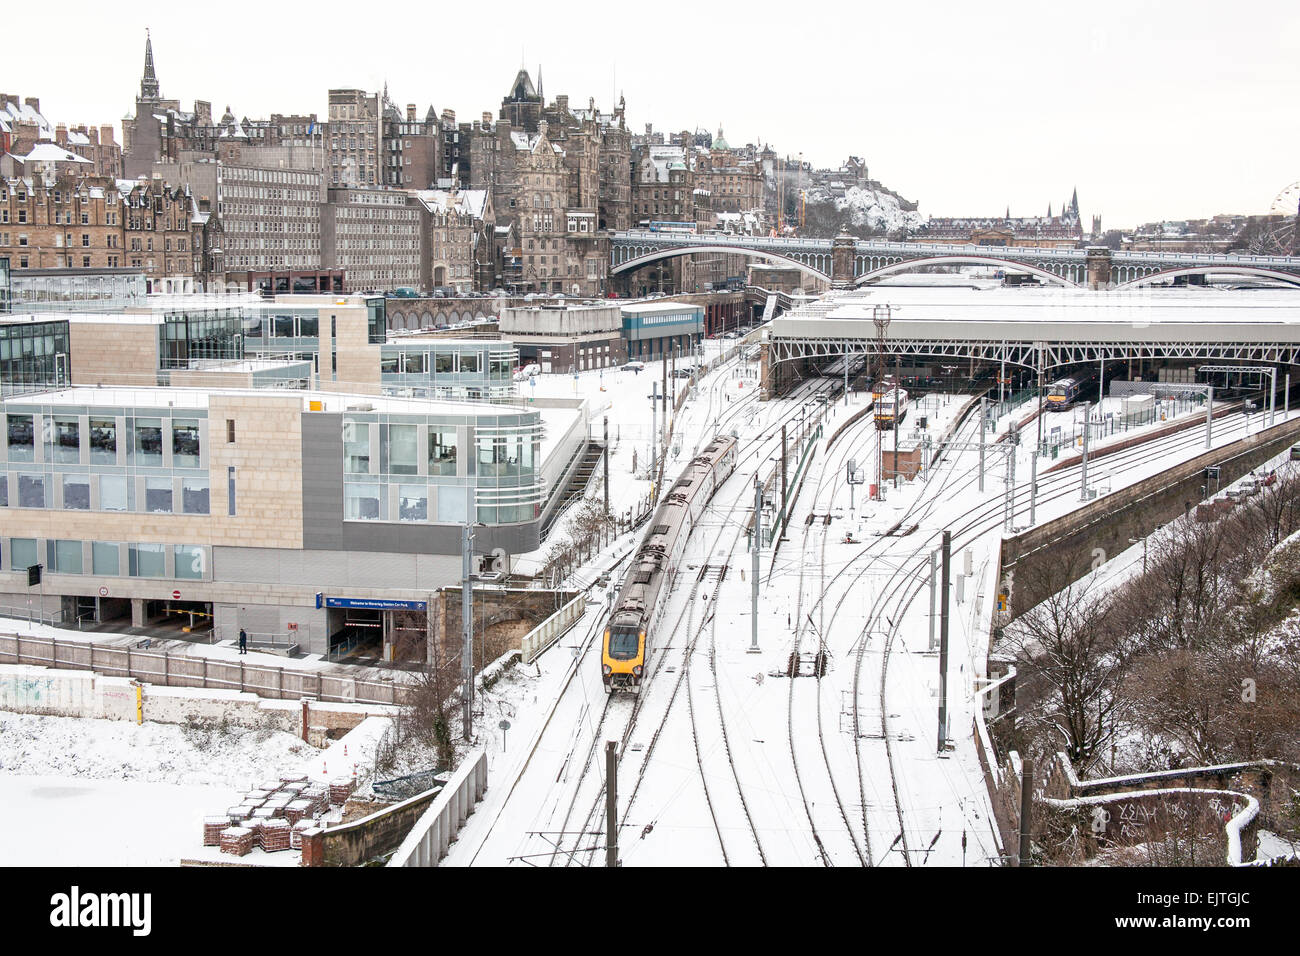 Edinburgh in Winter series with this one looking towards Edinburgh Castle, with Waverley train station in the foreground. - Stock Image